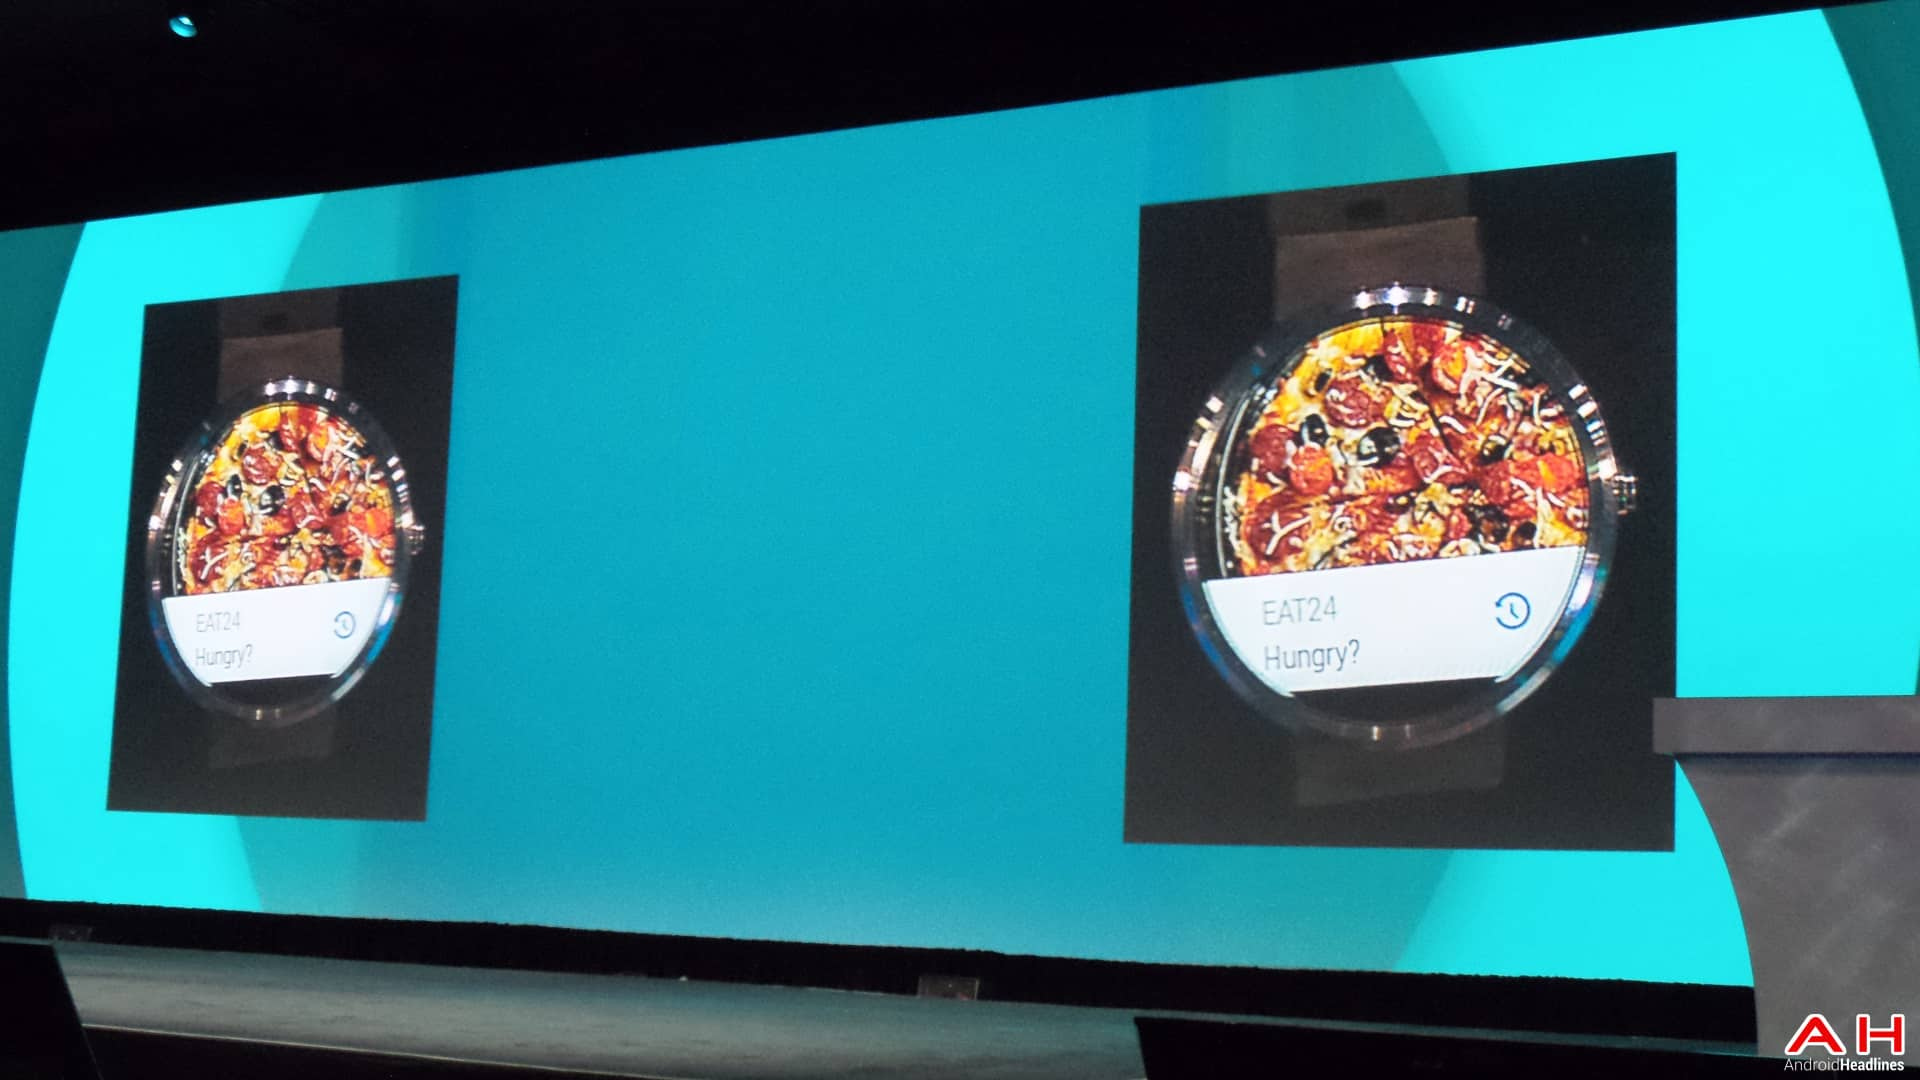 AH Google IO 2014 306 of 18 Android Wear